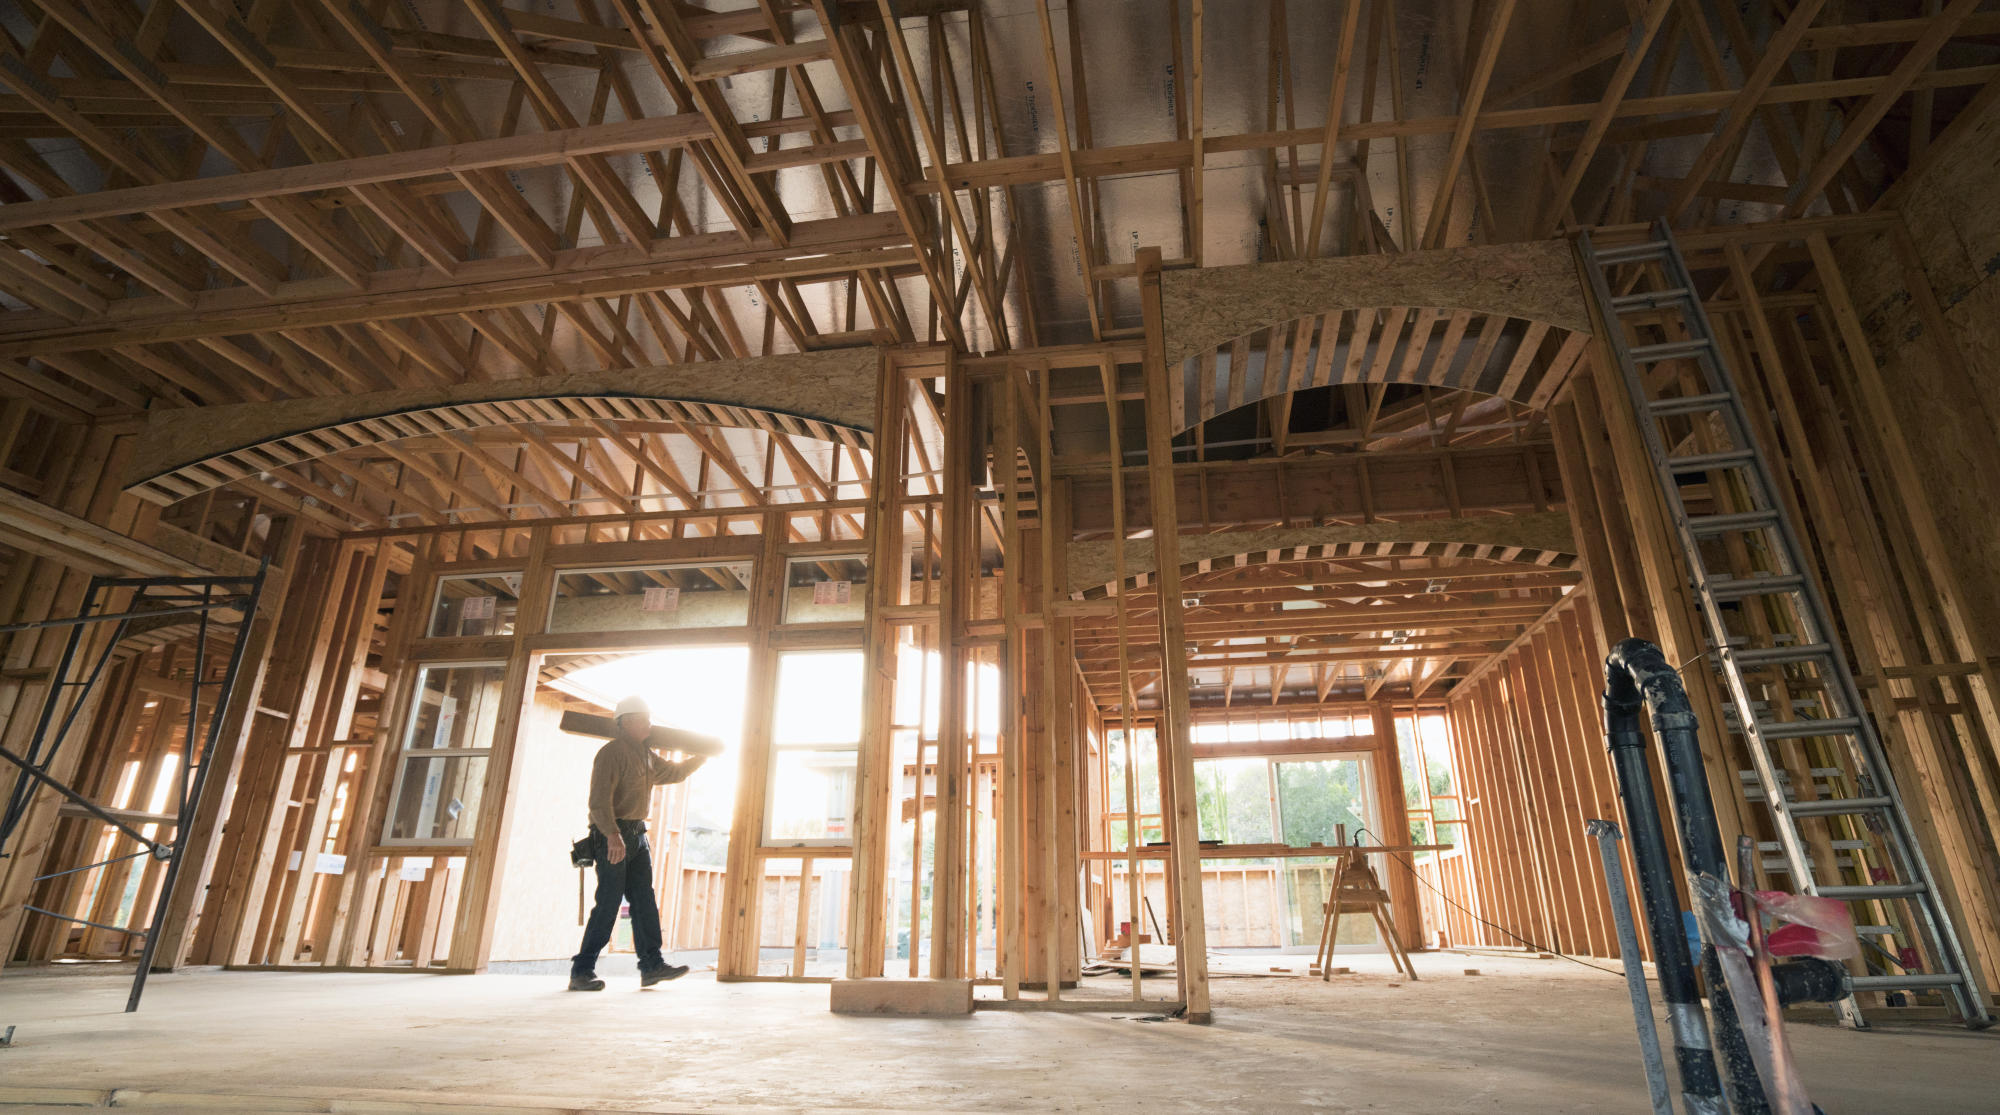 Historic shortage of homes for sale fueled by builders' supply chain woes